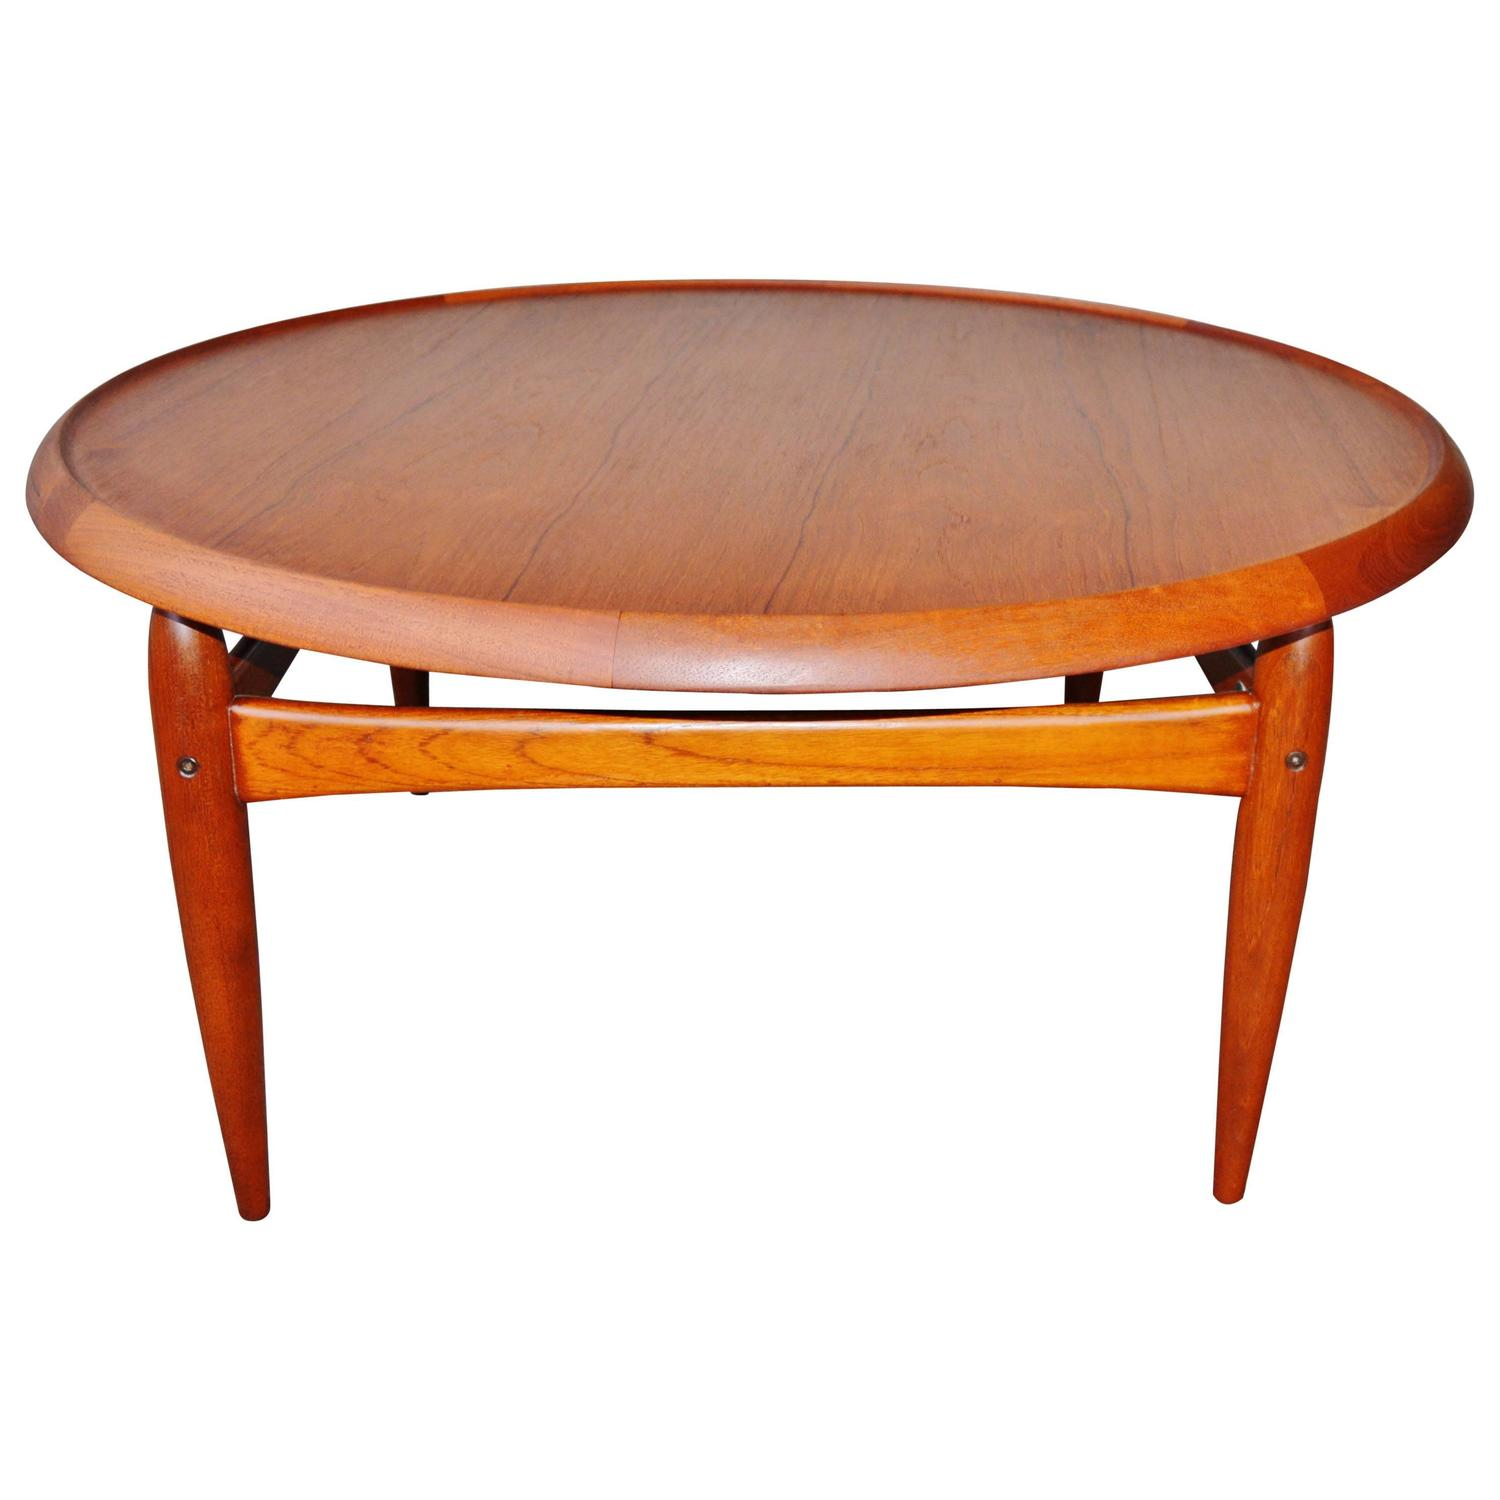 Teak Sculptural Flip Top Coffee Table By Ingvard Jensen At 1stdibs